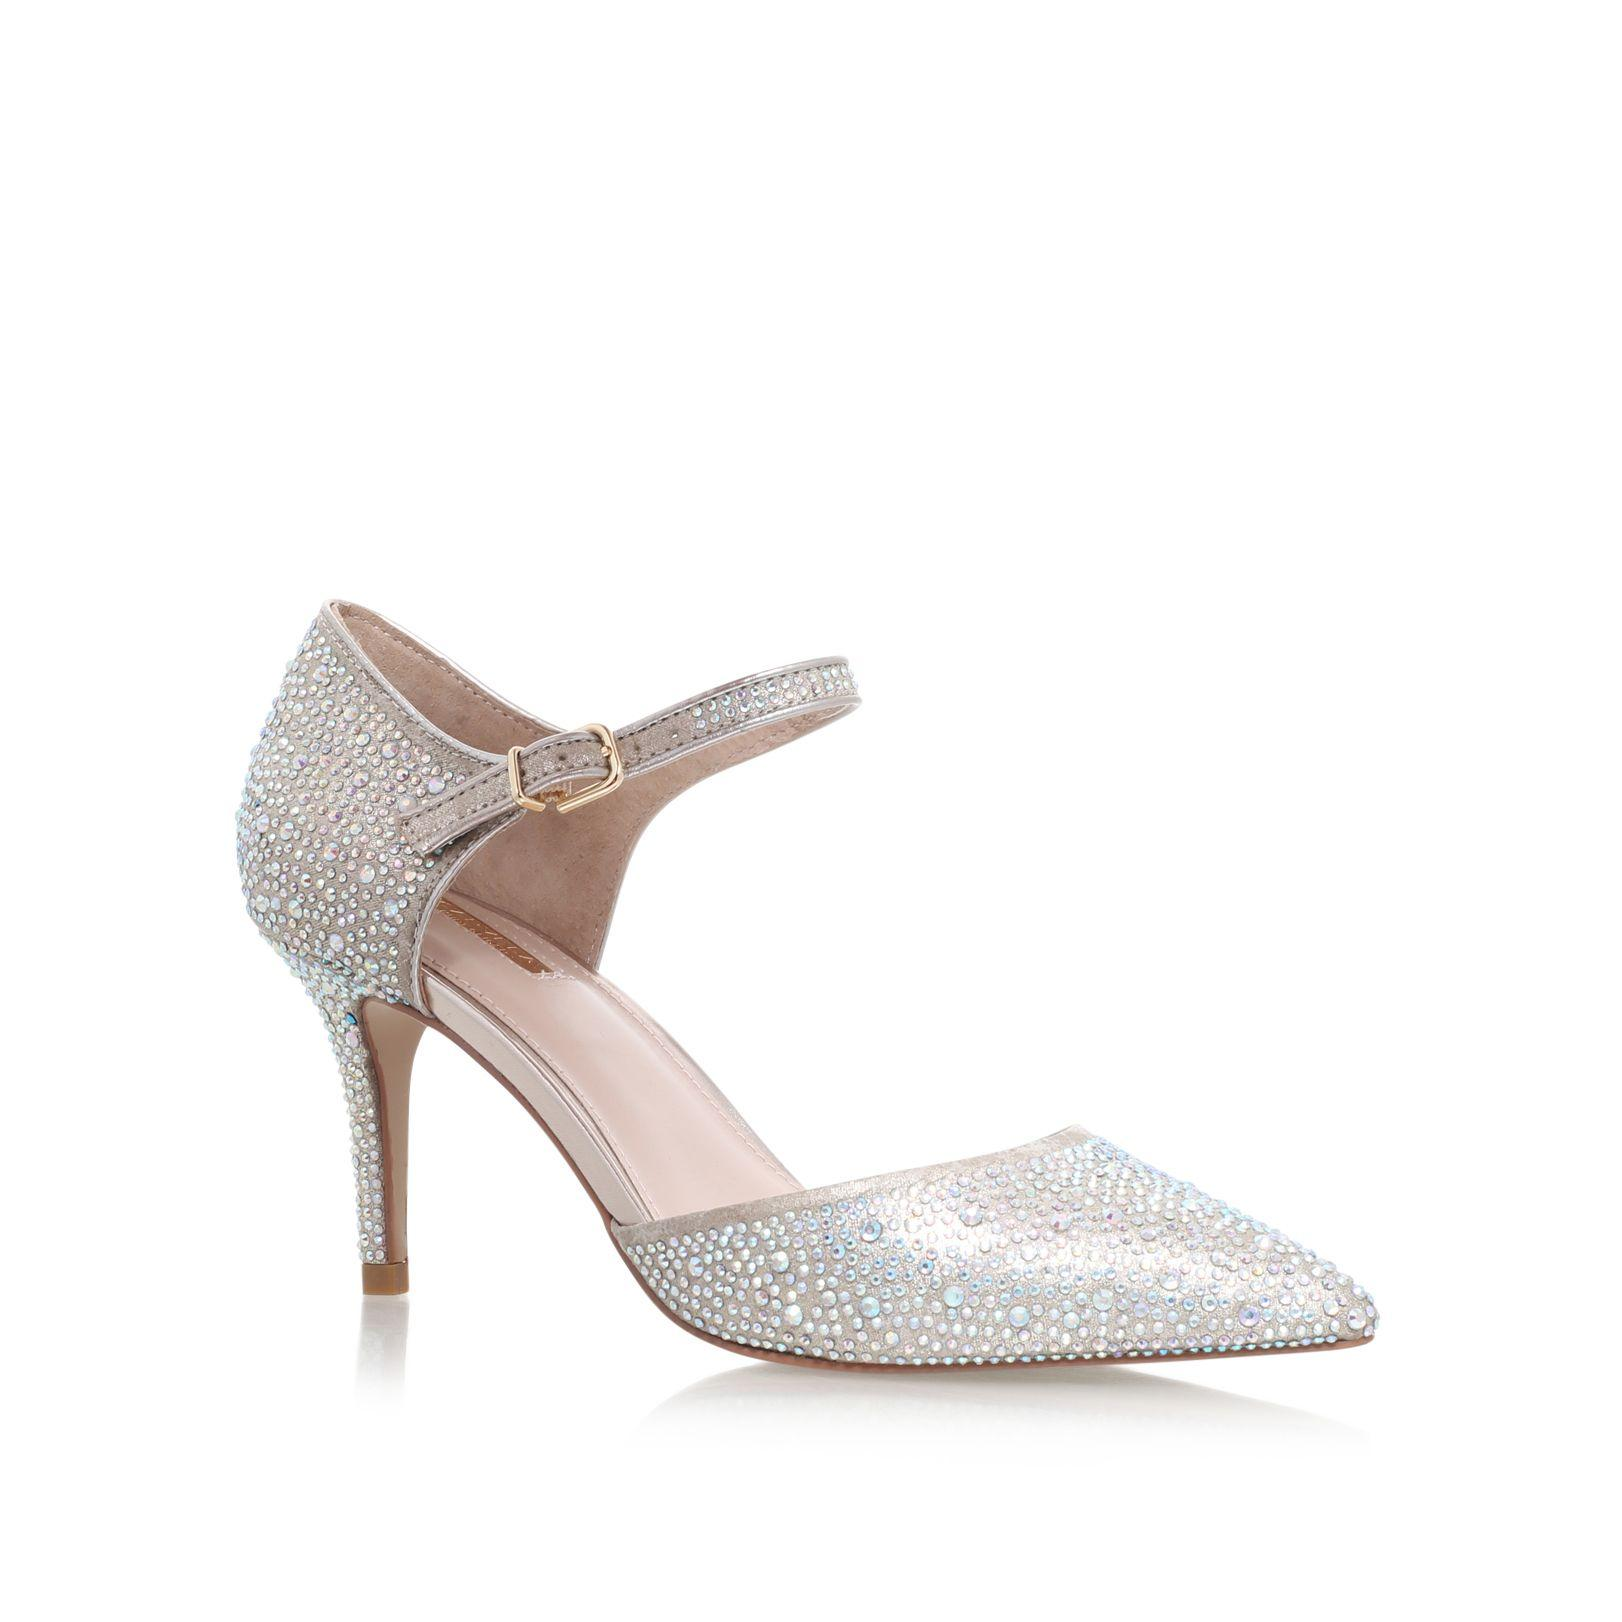 Silver Shoes High Heels House Of Fraser